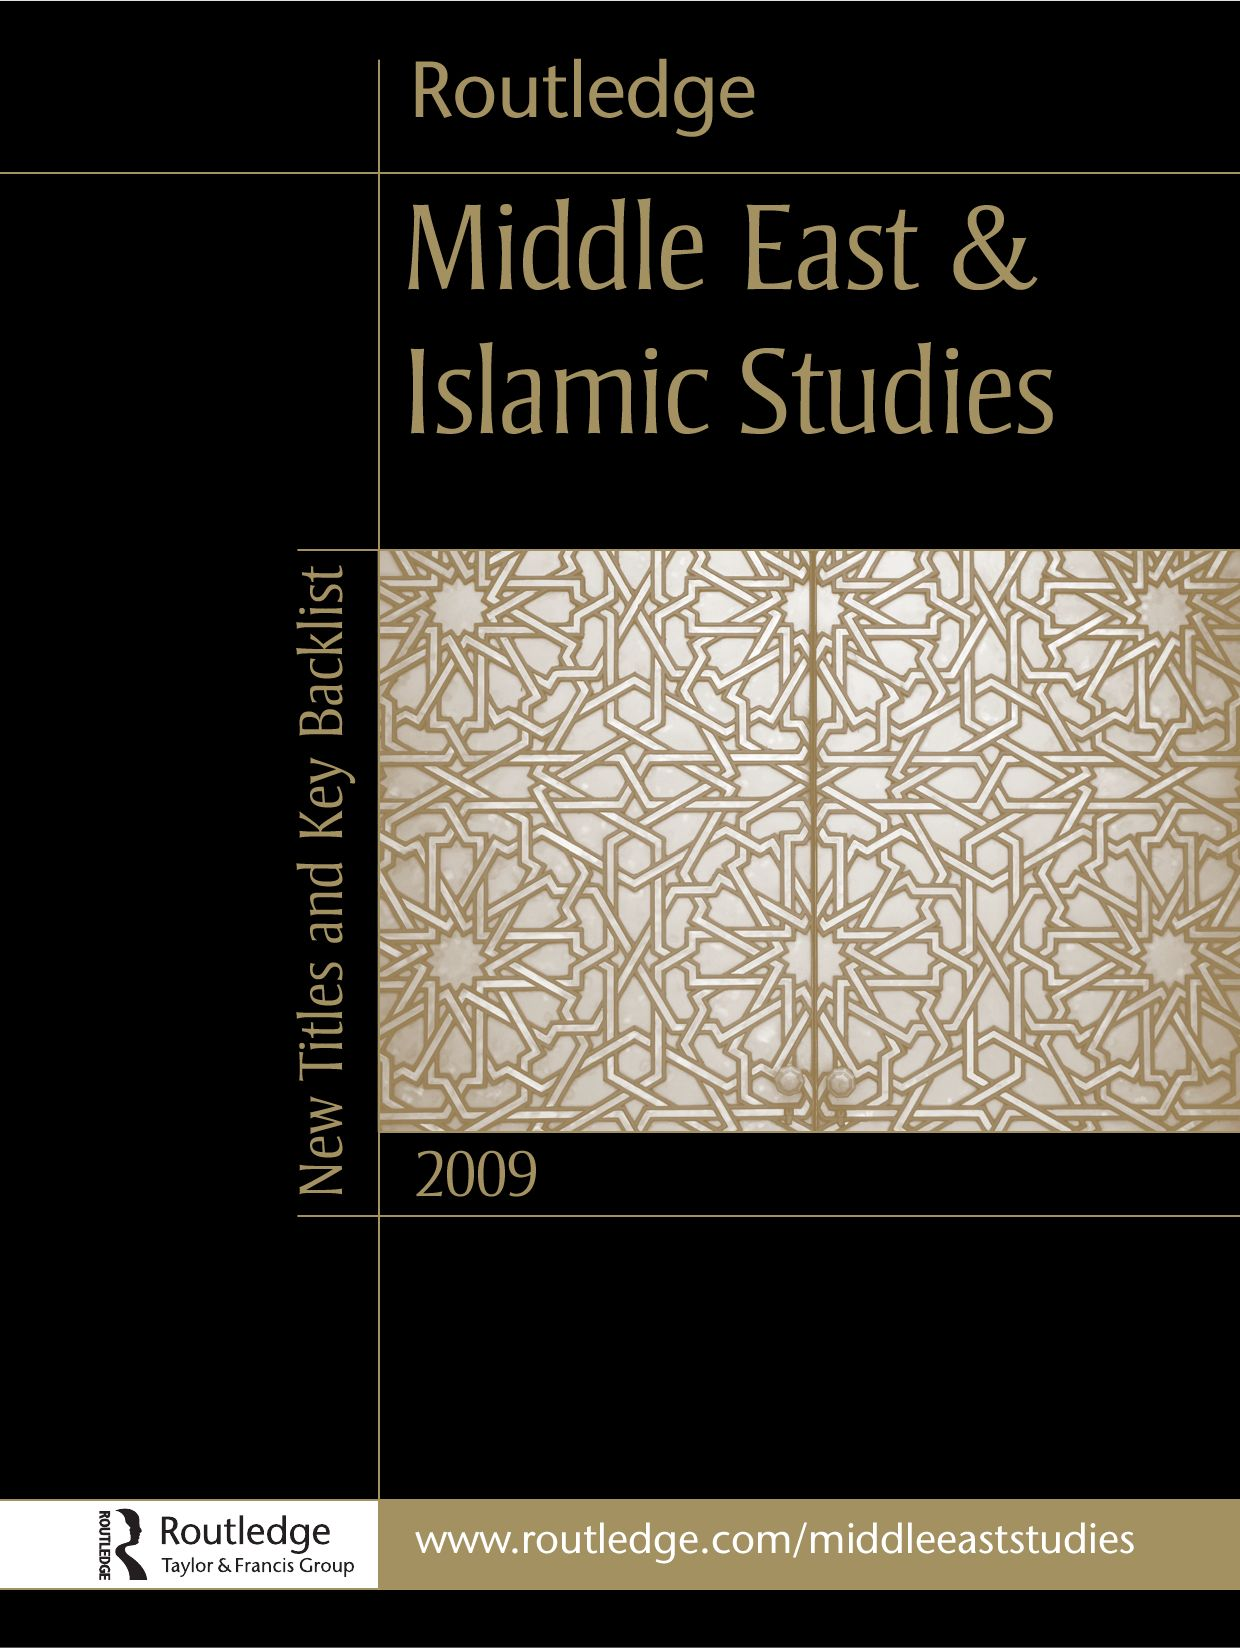 Middle East And Islamic Studies 2009 (uk) By Routledge Taylor & Francis  Group  Issuu